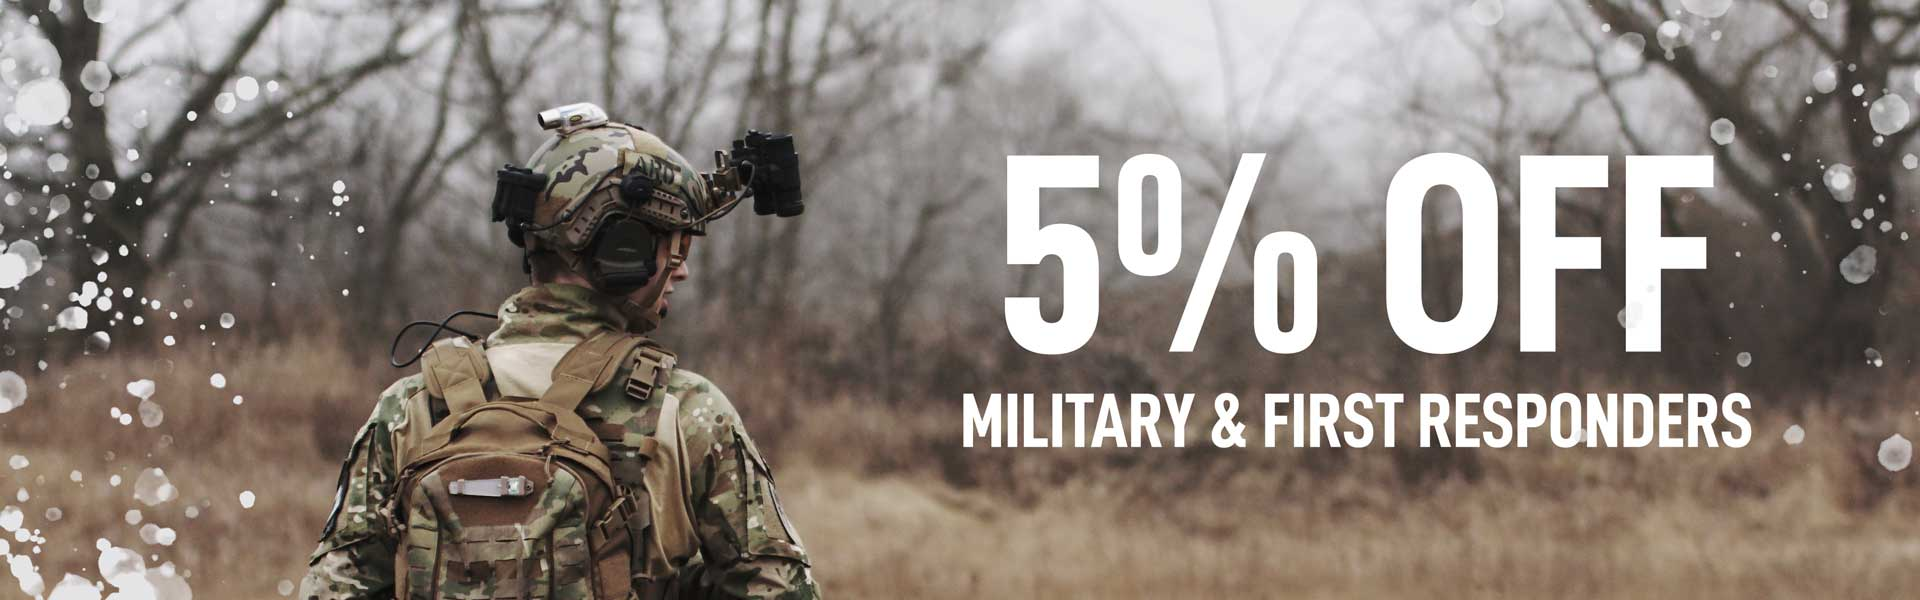 military-first-responder-discount-header-1.jpg